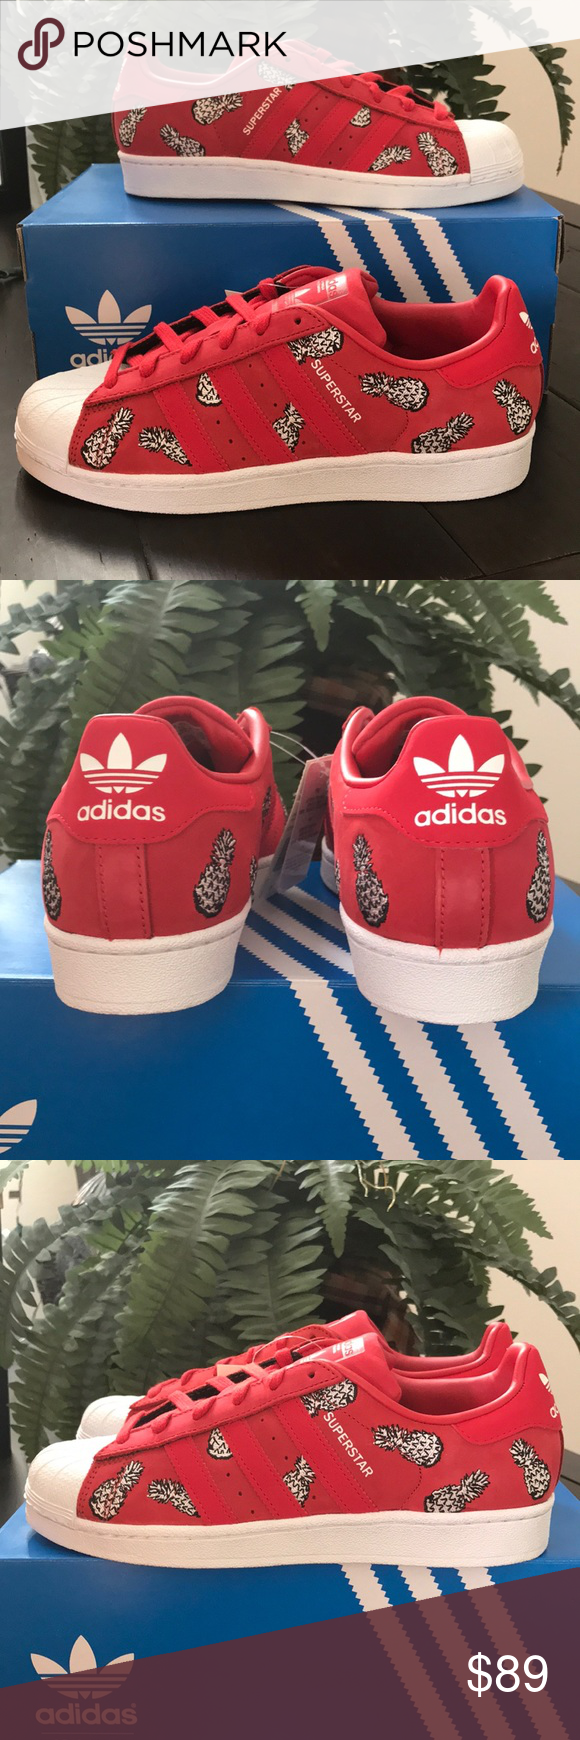 5ffa585c511c New Adidas Superstar Scarlet White Pineapple SZ 8 This is a new in the box  pair of Adidas superstar women s sneakers. They are a size 8.